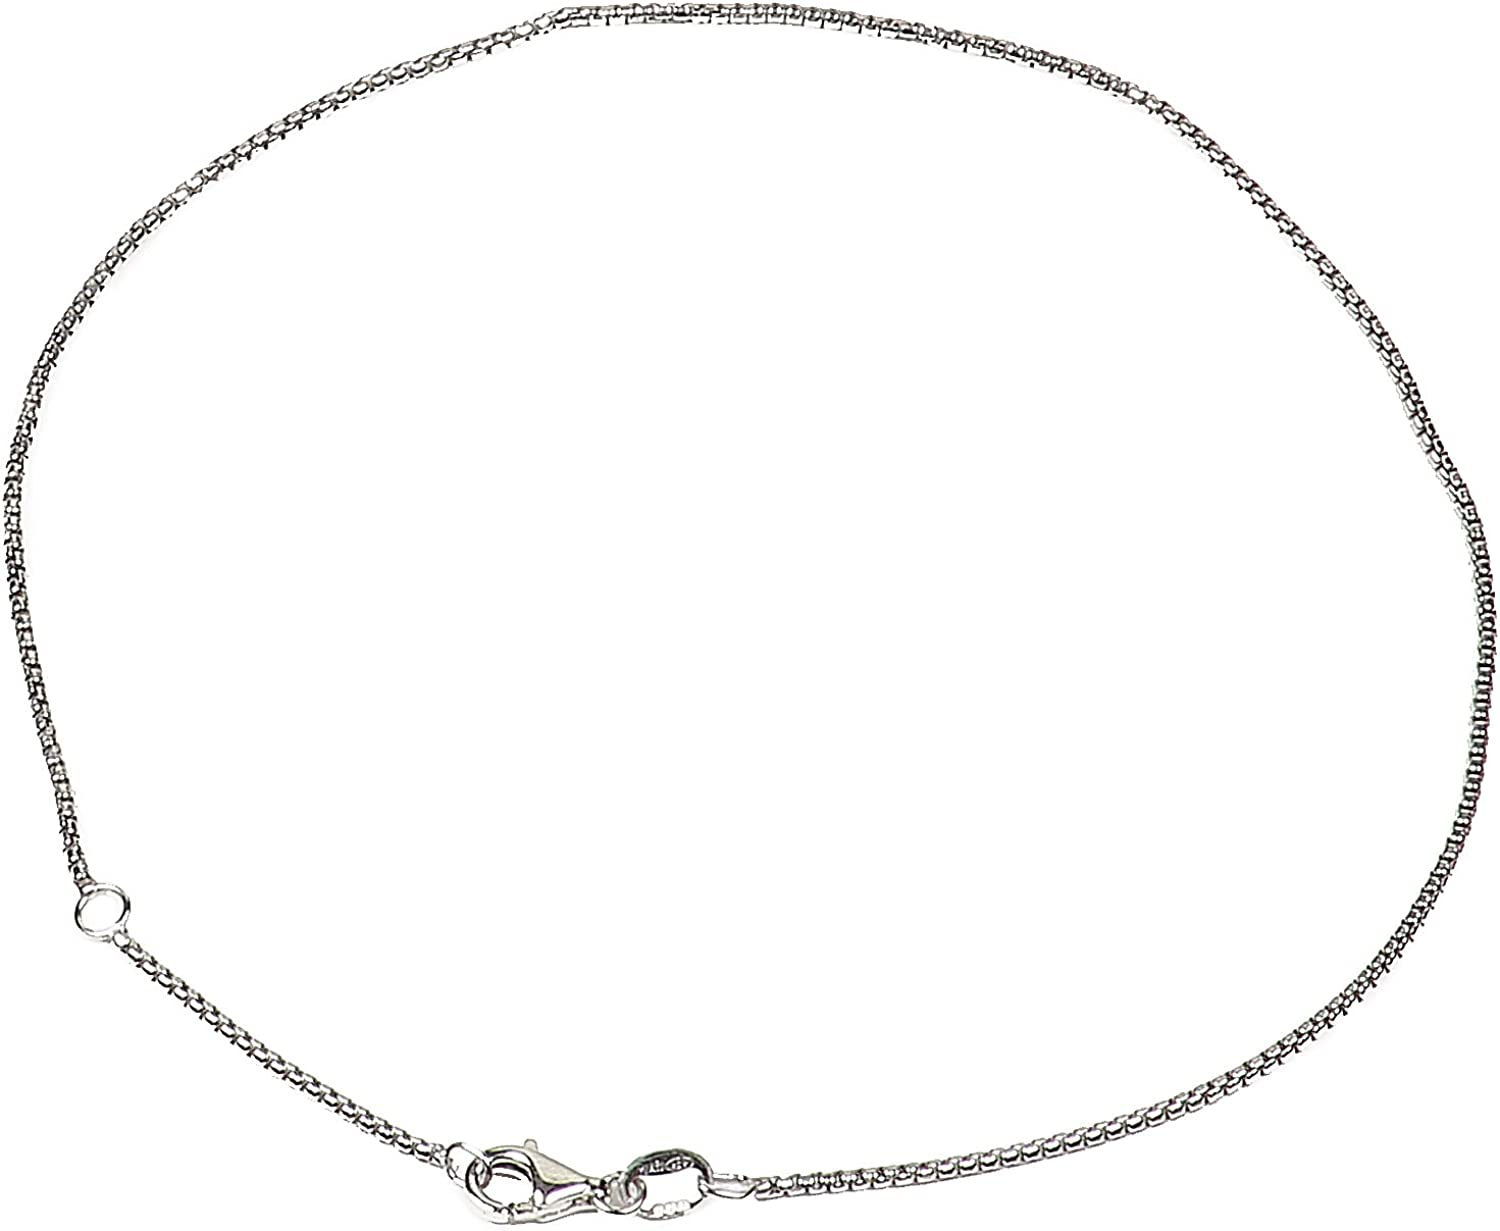 Italian Quality Chain 925 Sterling Silver Chain | Round Box Chain Necklaces for Women or Men and Bracelets for Women or Mens Bracelet | Anti Tarnish